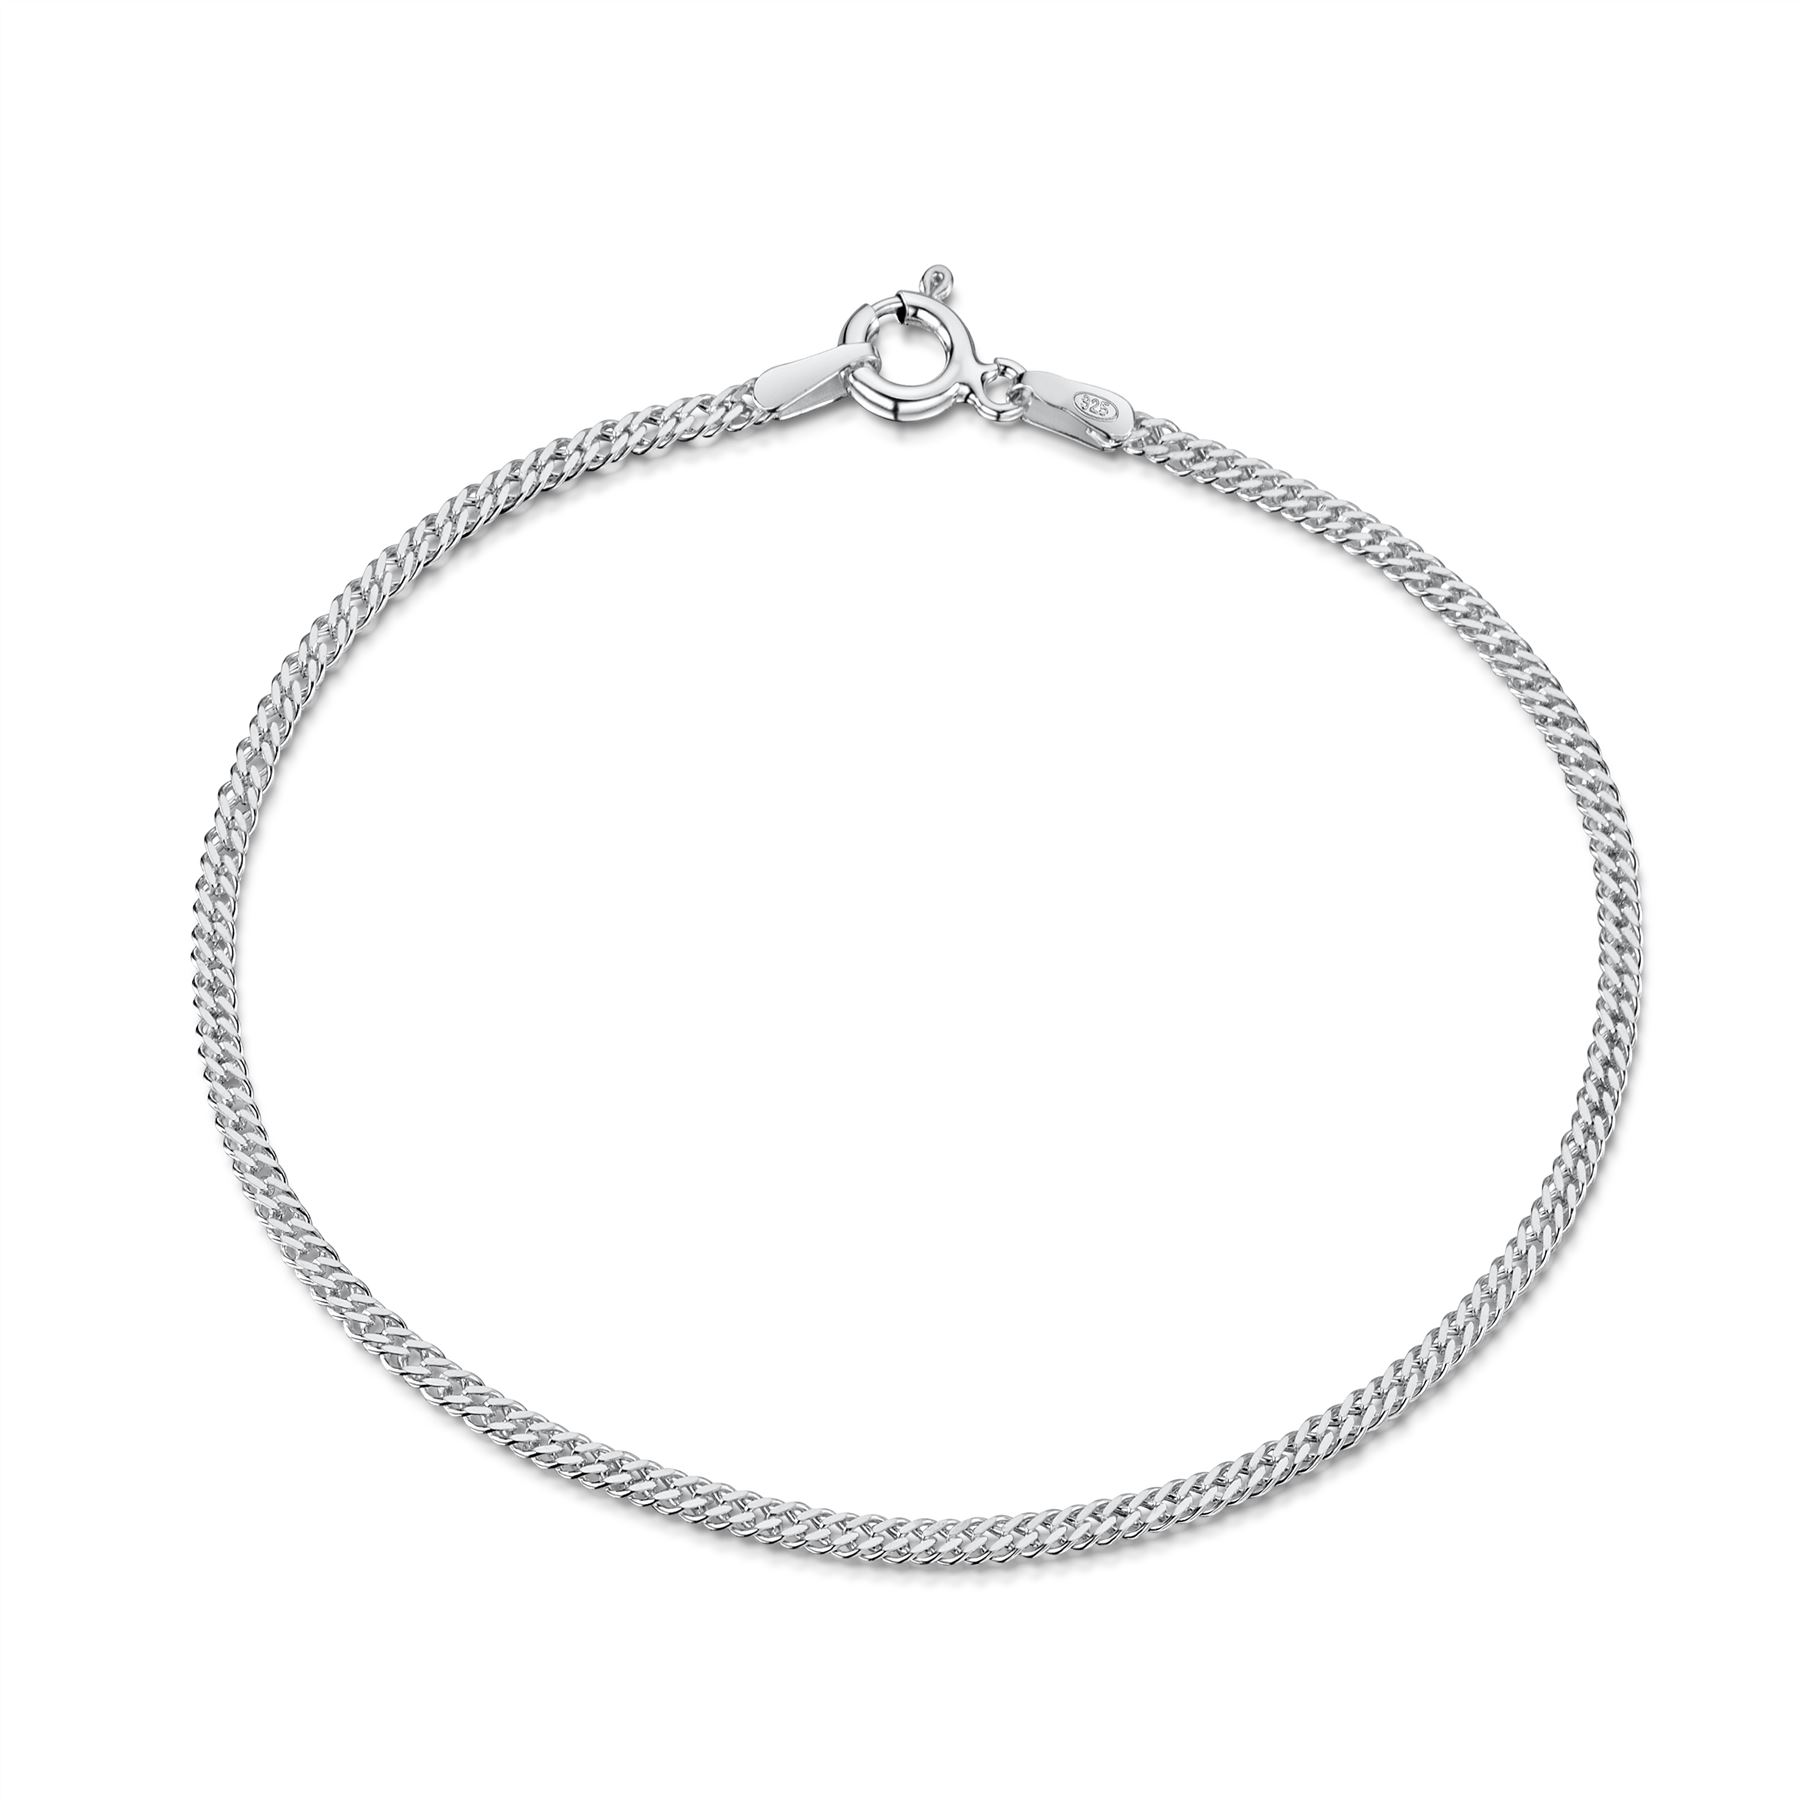 Amberta-Jewelry-Genuine-925-Sterling-Silver-Bracelet-Bangle-Chain-Made-in-Italy thumbnail 48